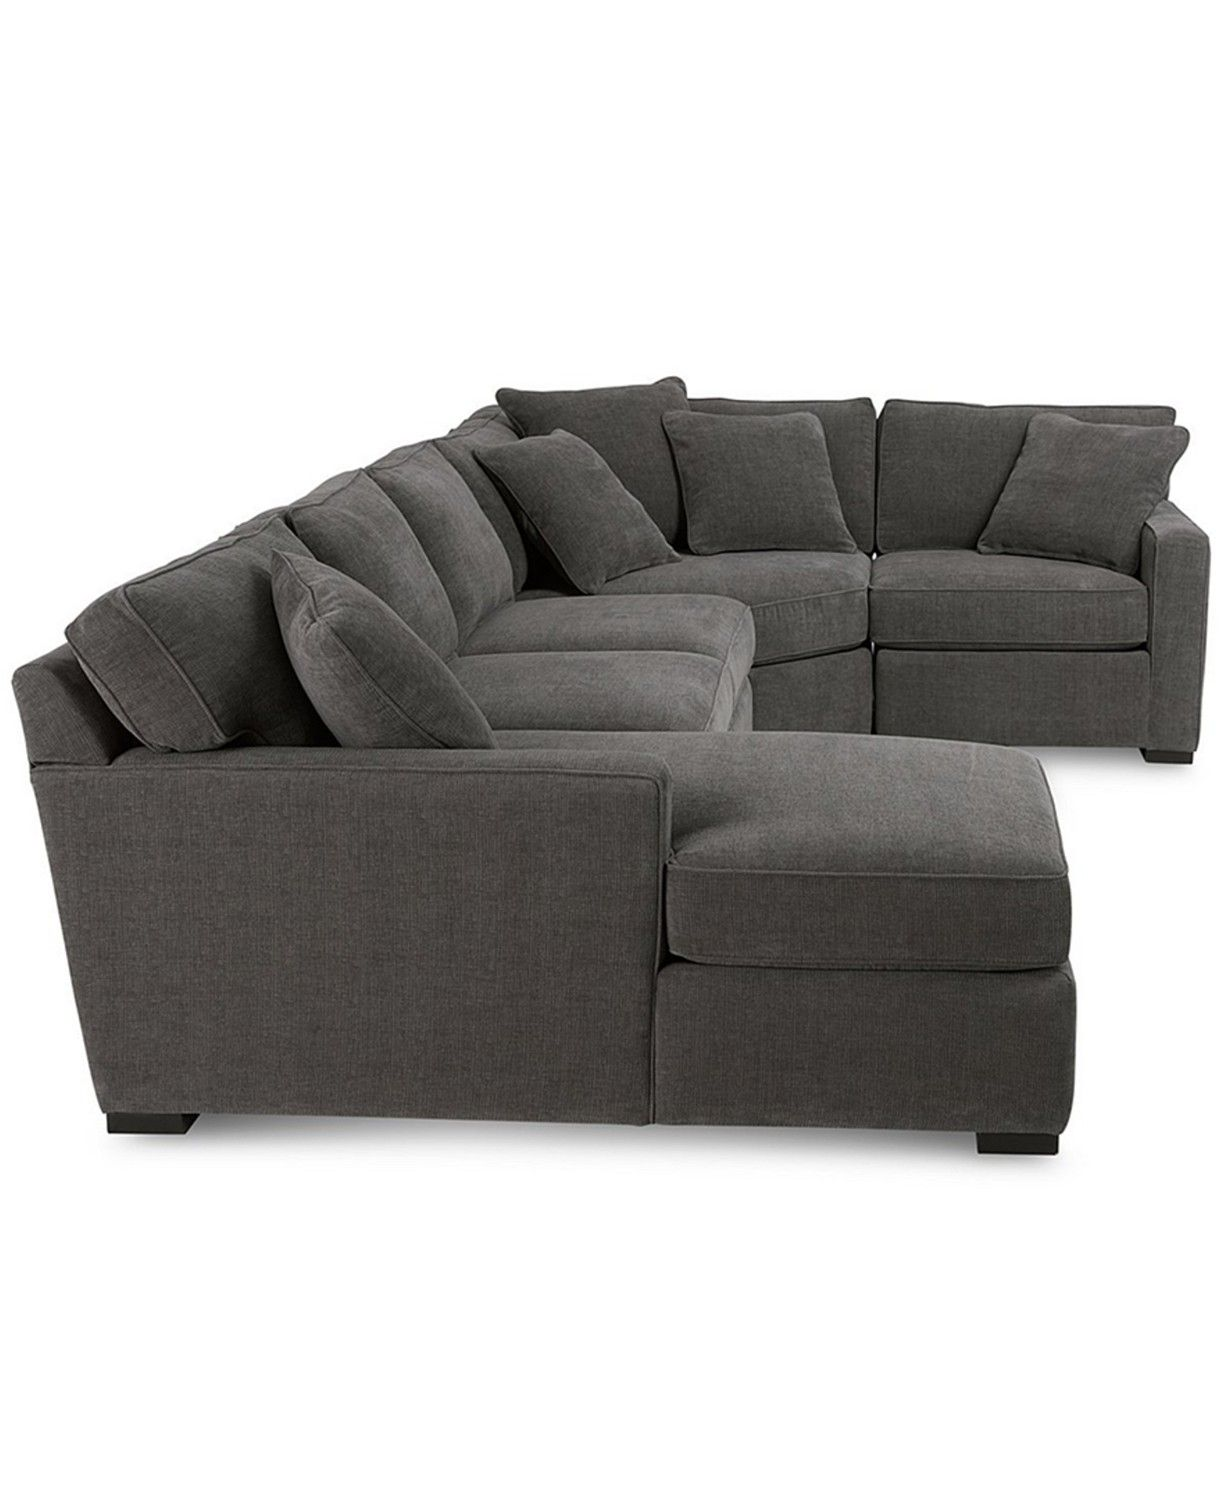 Furniture Radley 4 Piece Fabric Chaise Sectional Sofa Created For Macy S Reviews Furniture Macy S In 2020 Sectional Sofa Comfy Grey Sectional Sofa Comfy Sectional